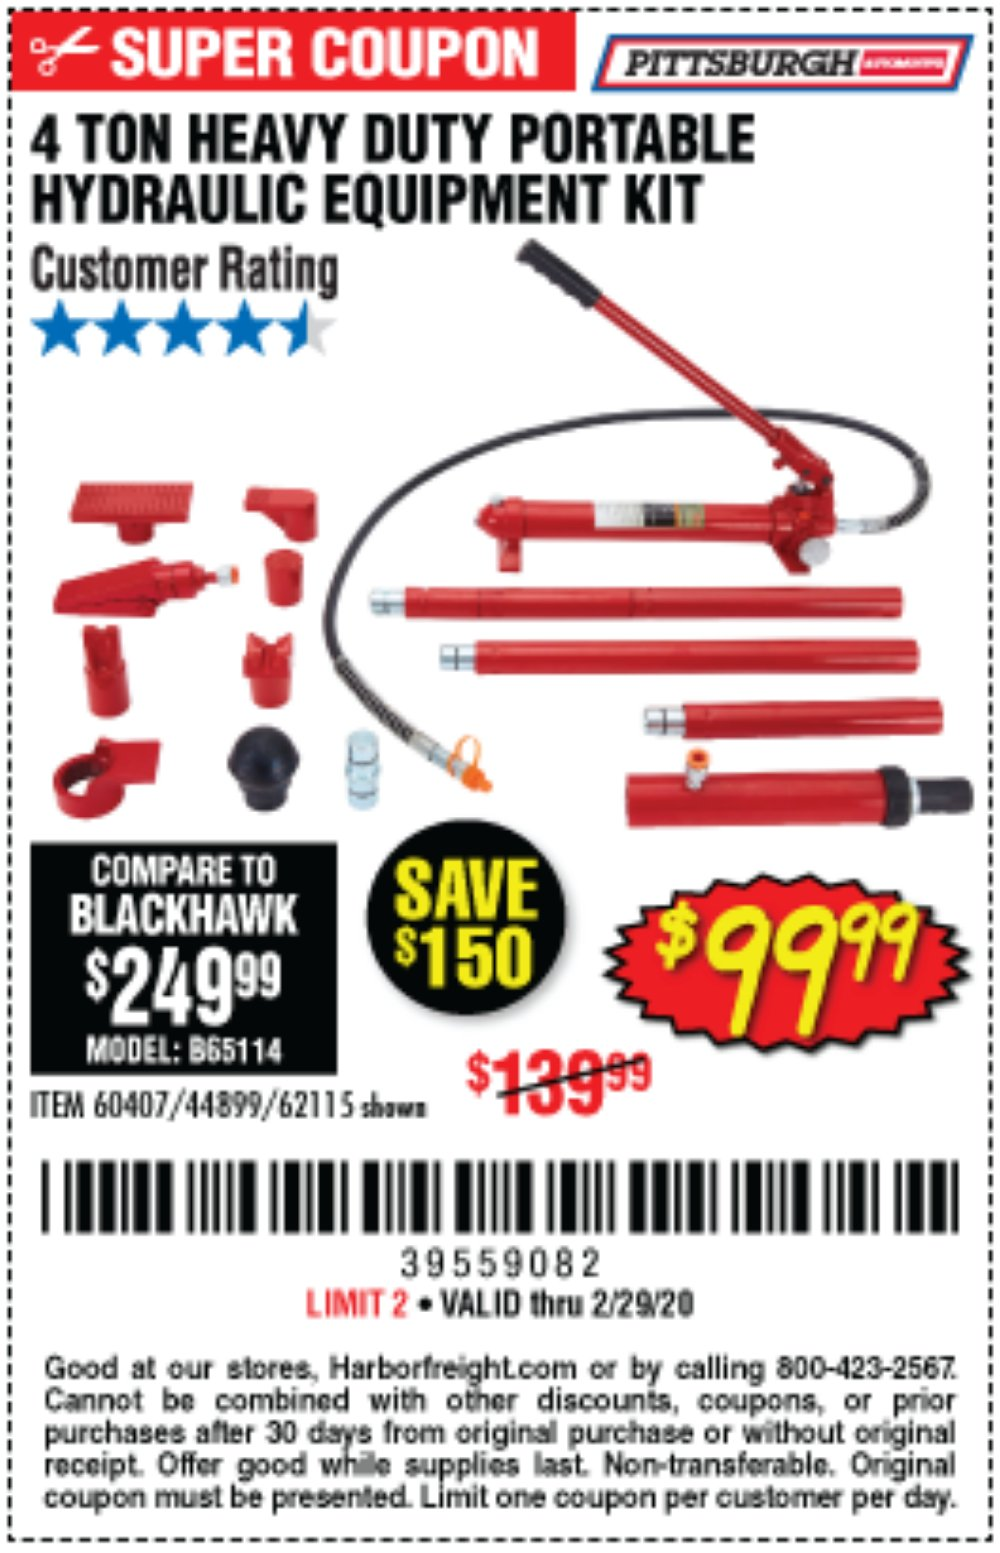 Harbor Freight Coupon, HF Coupons - 4 Ton Heavy Duty Portable Hydraulic Equipment Kit